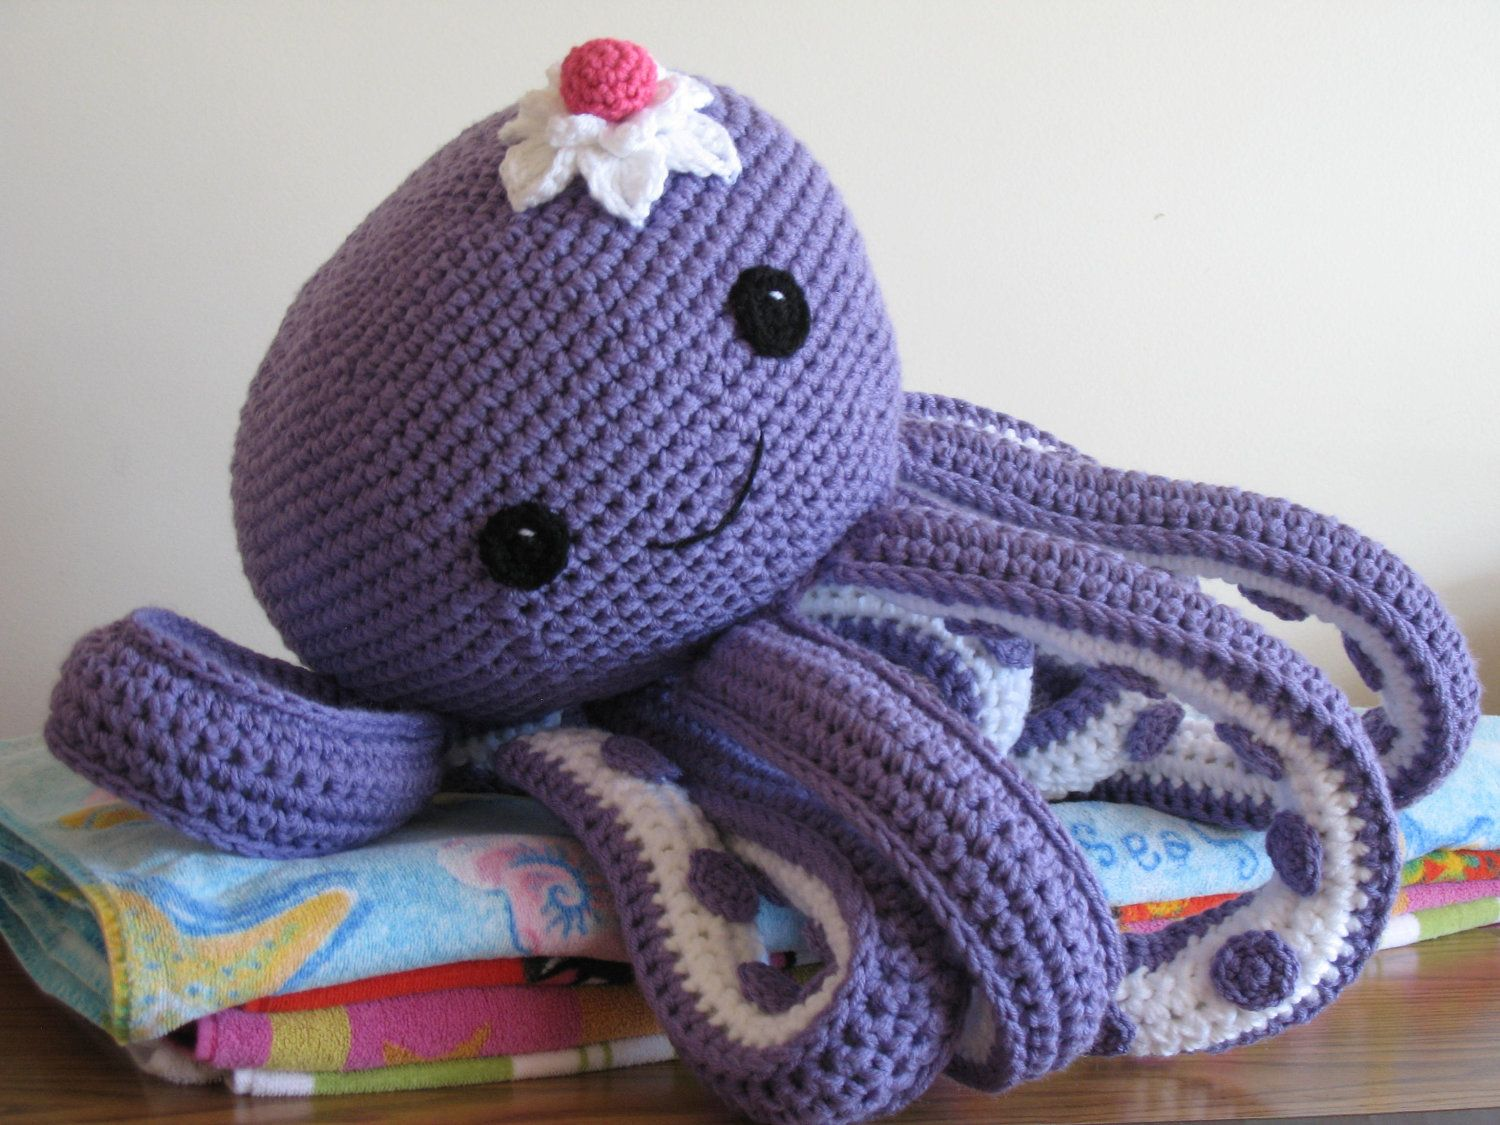 Free Amigurumi Patterns Octopus : Free crochet pattern for mini octopus finding joy crochet and